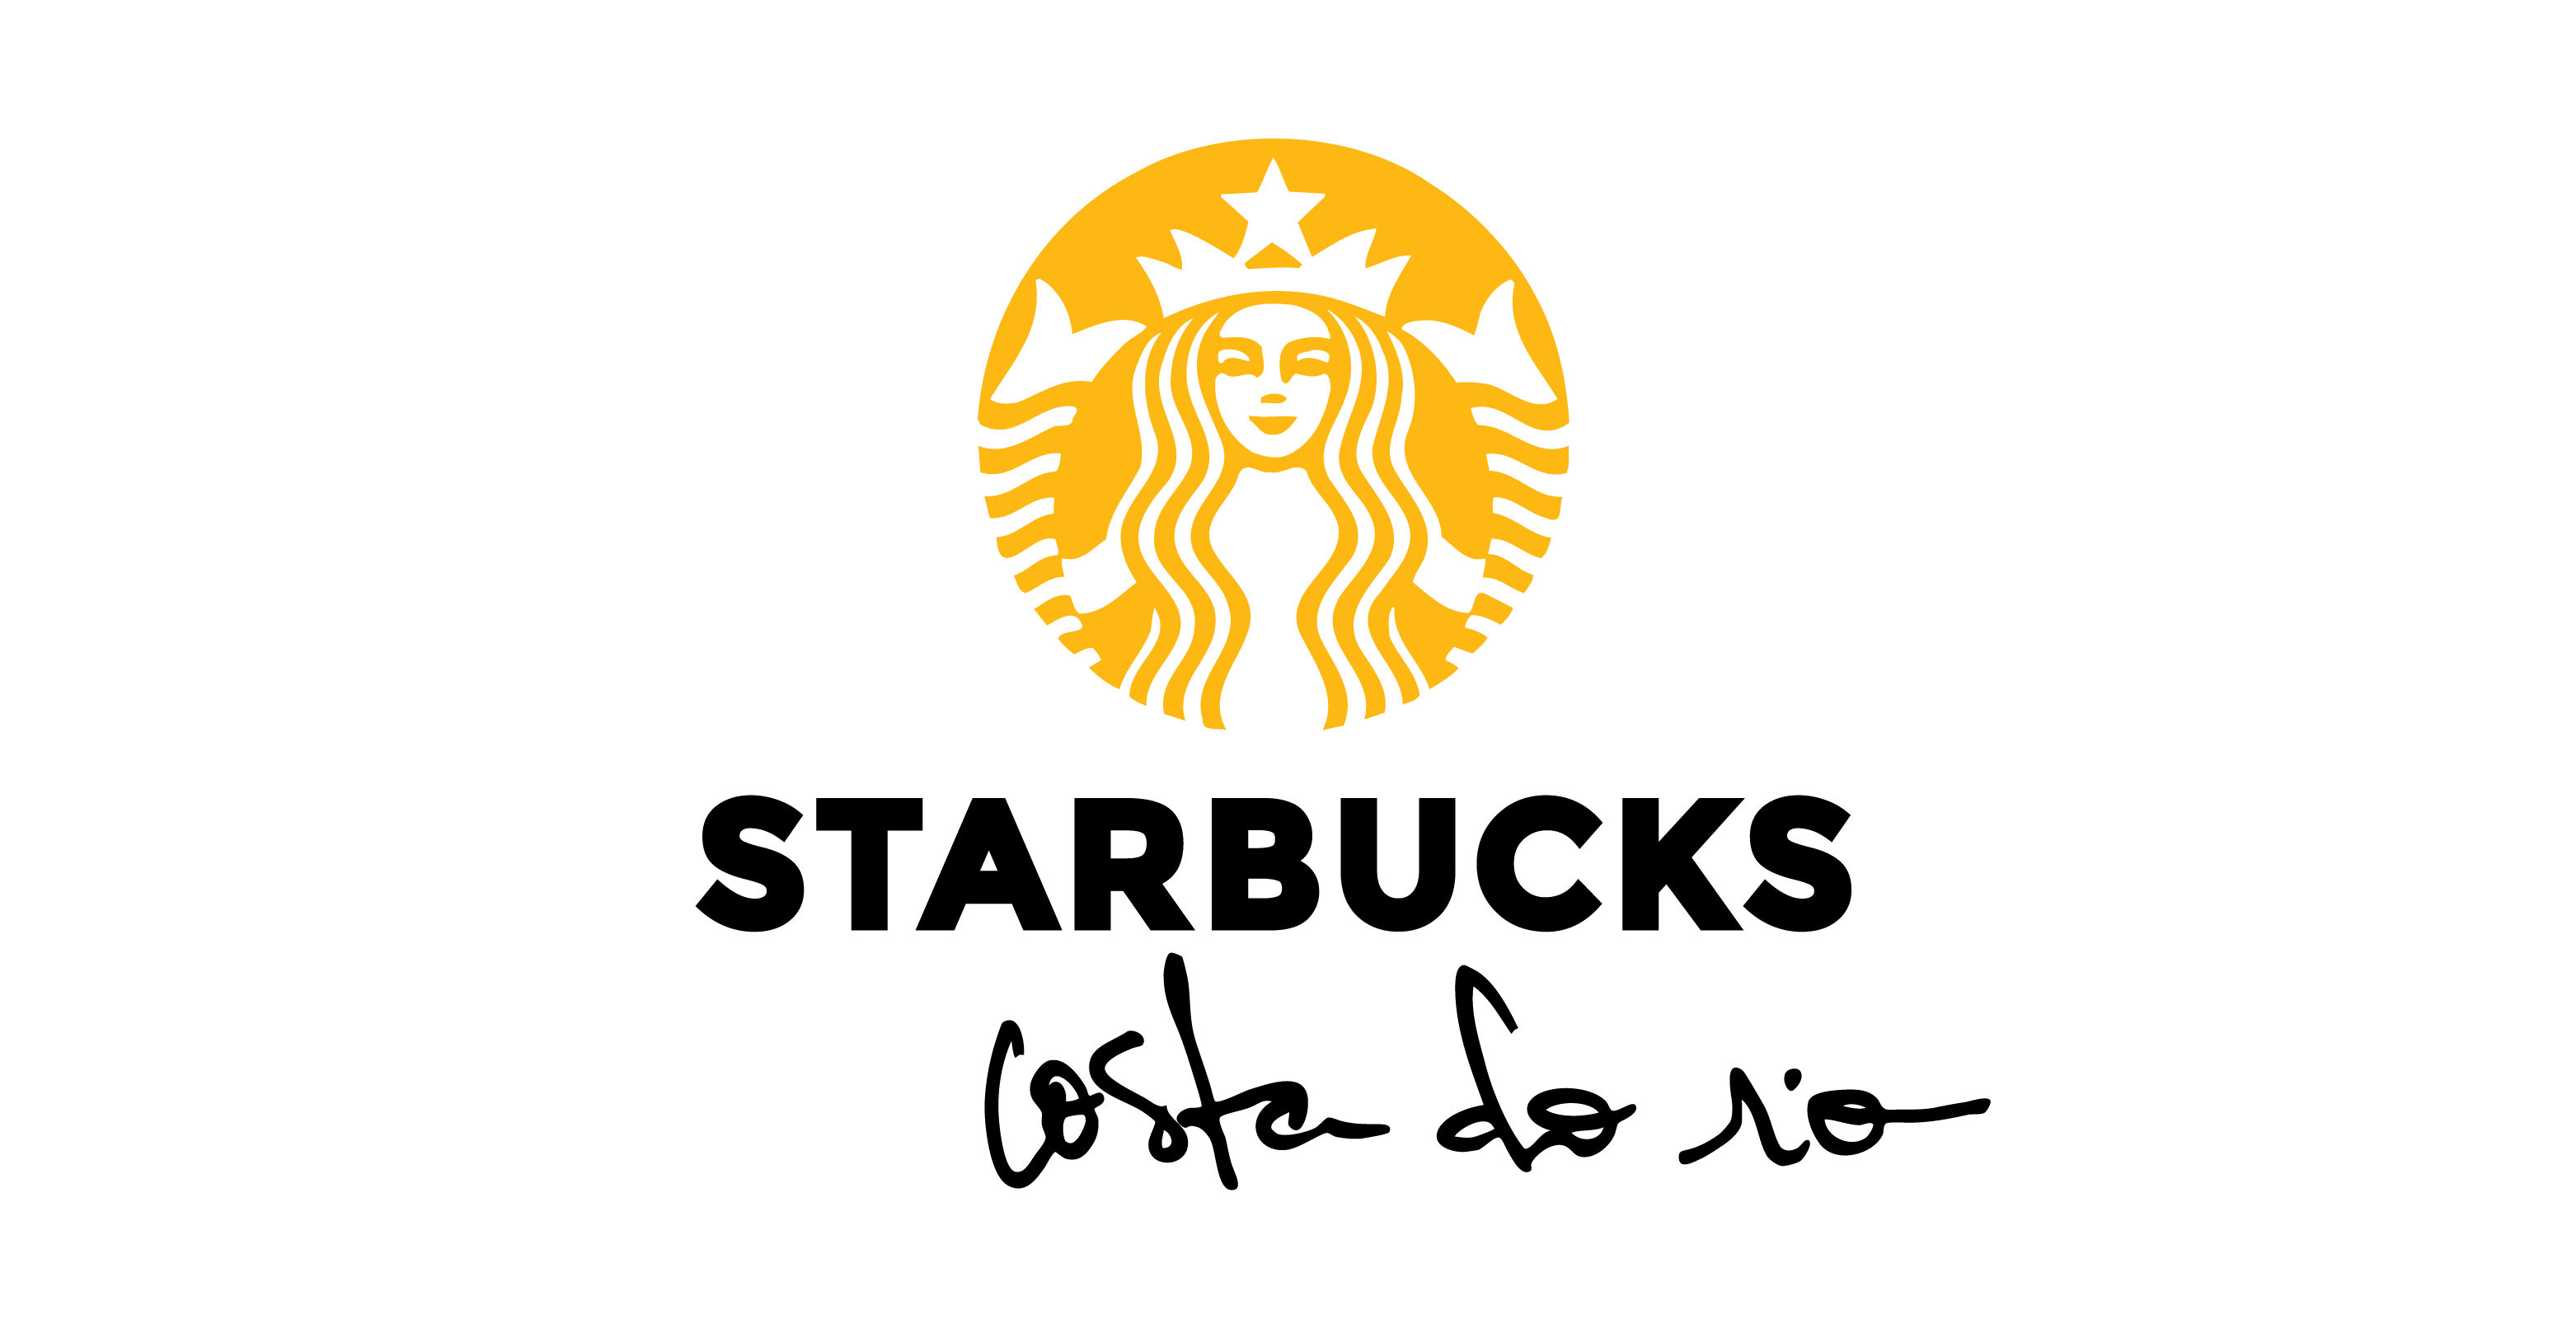 starbucks visual essay glocalization on behance